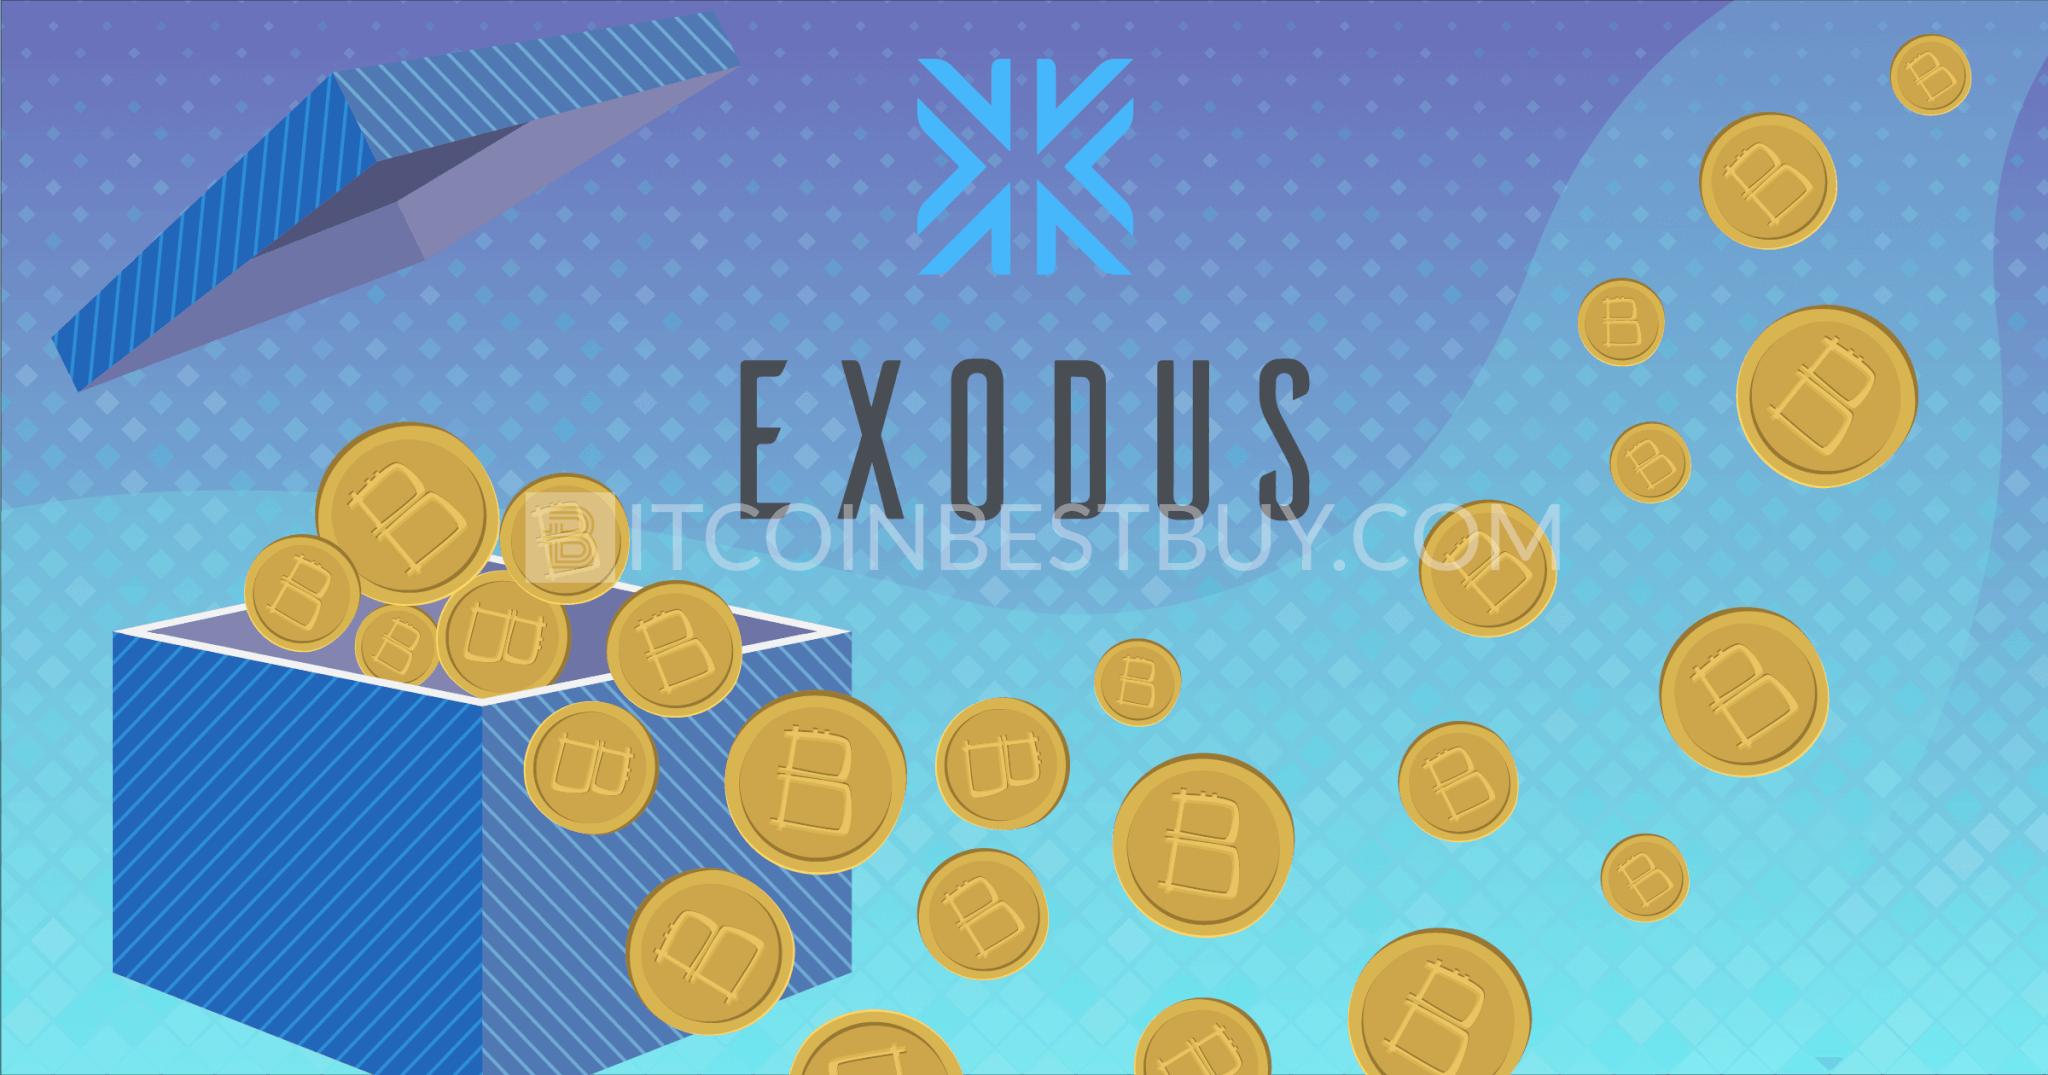 Review of Exodus bitcoin wallet